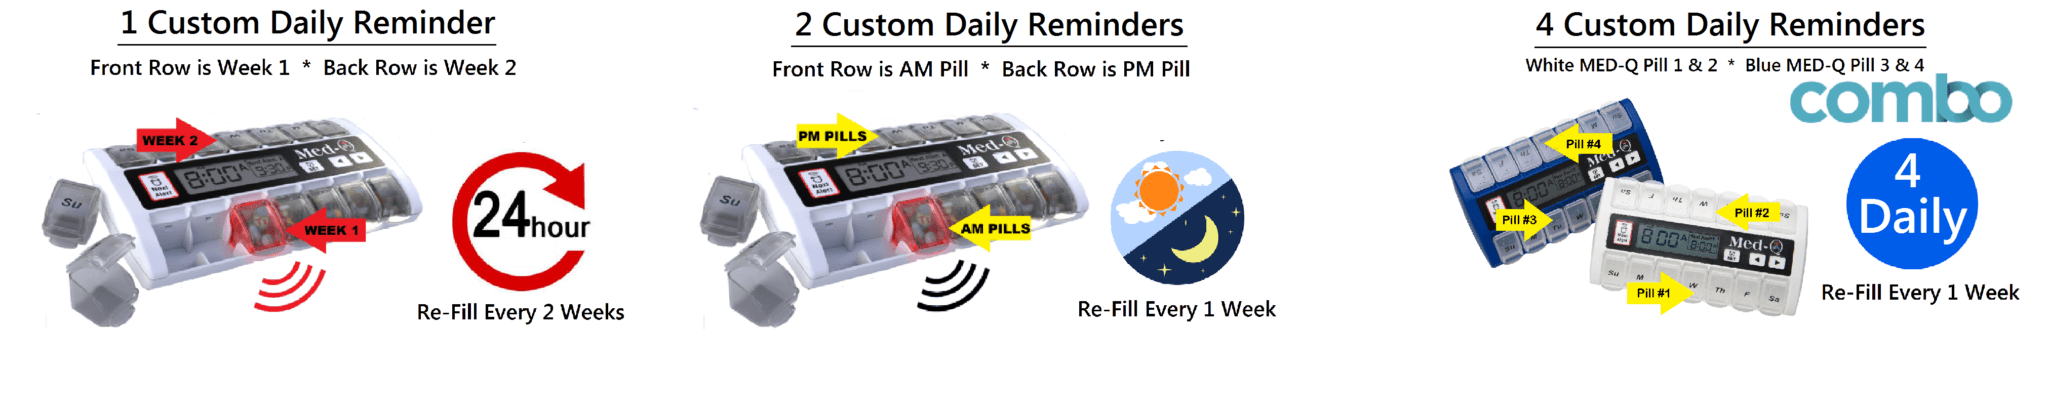 Smart Pill Box alarms System